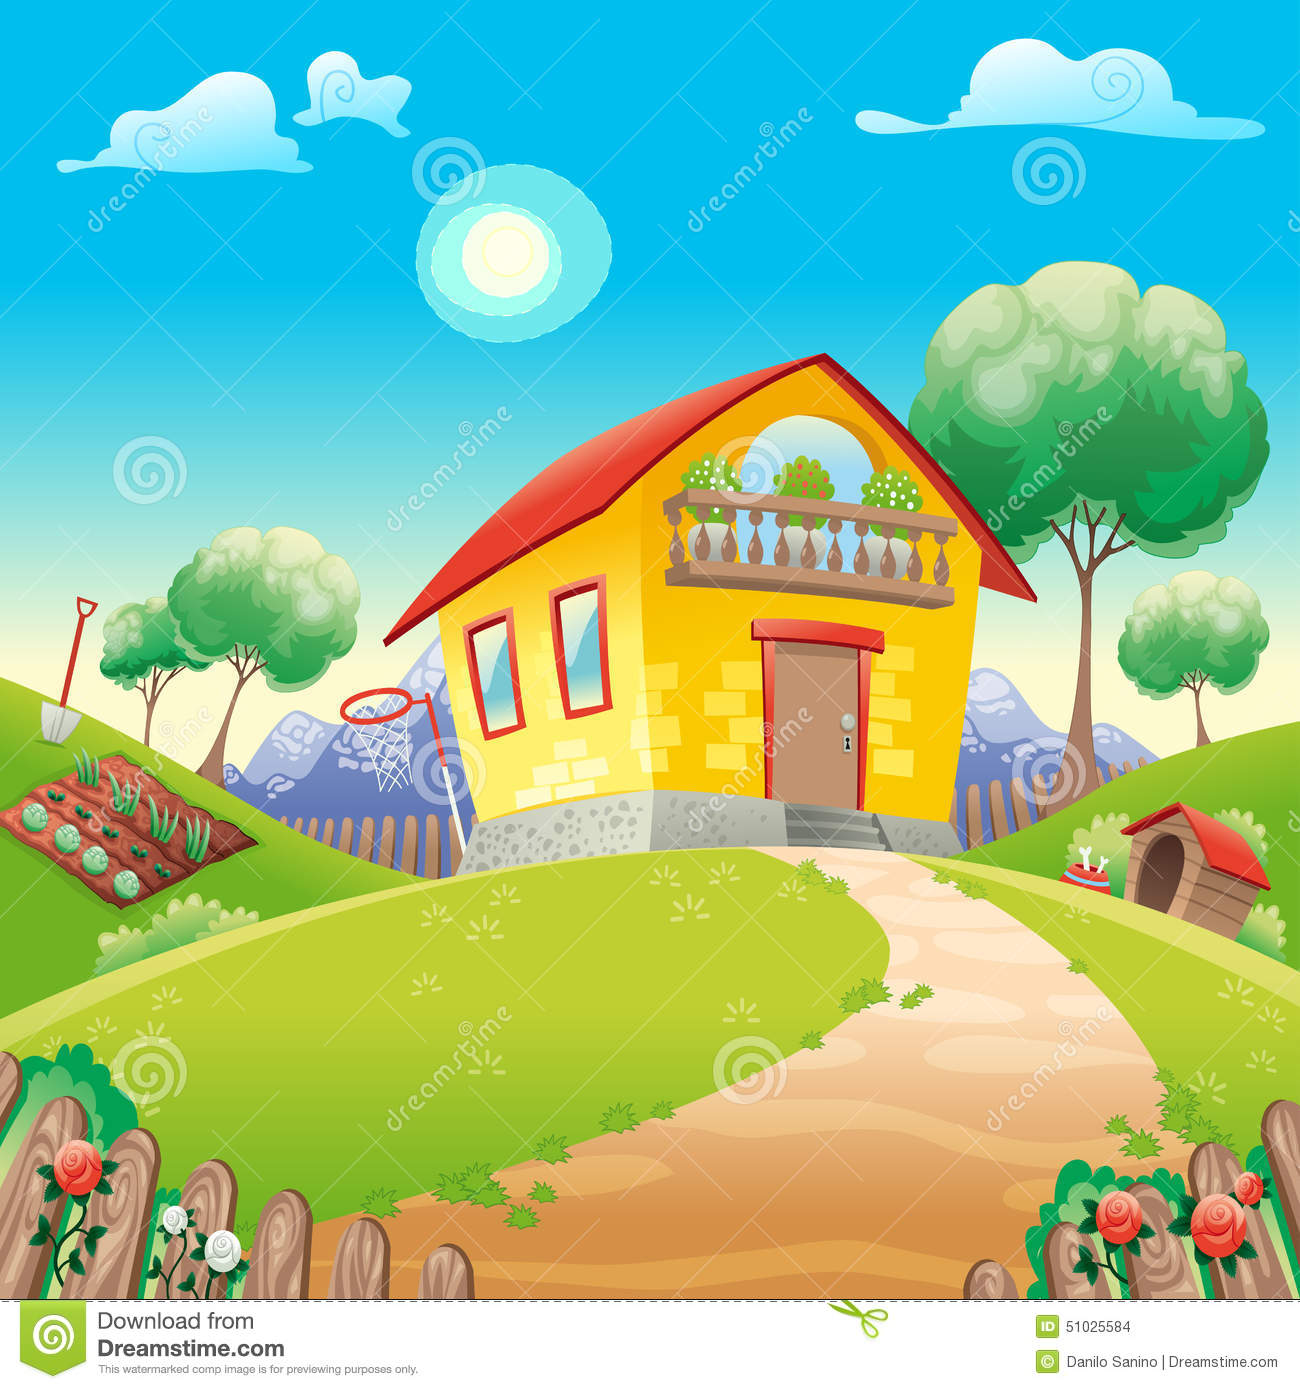 House With Garden Int The Countryside Stock Vector - Image: 51025584